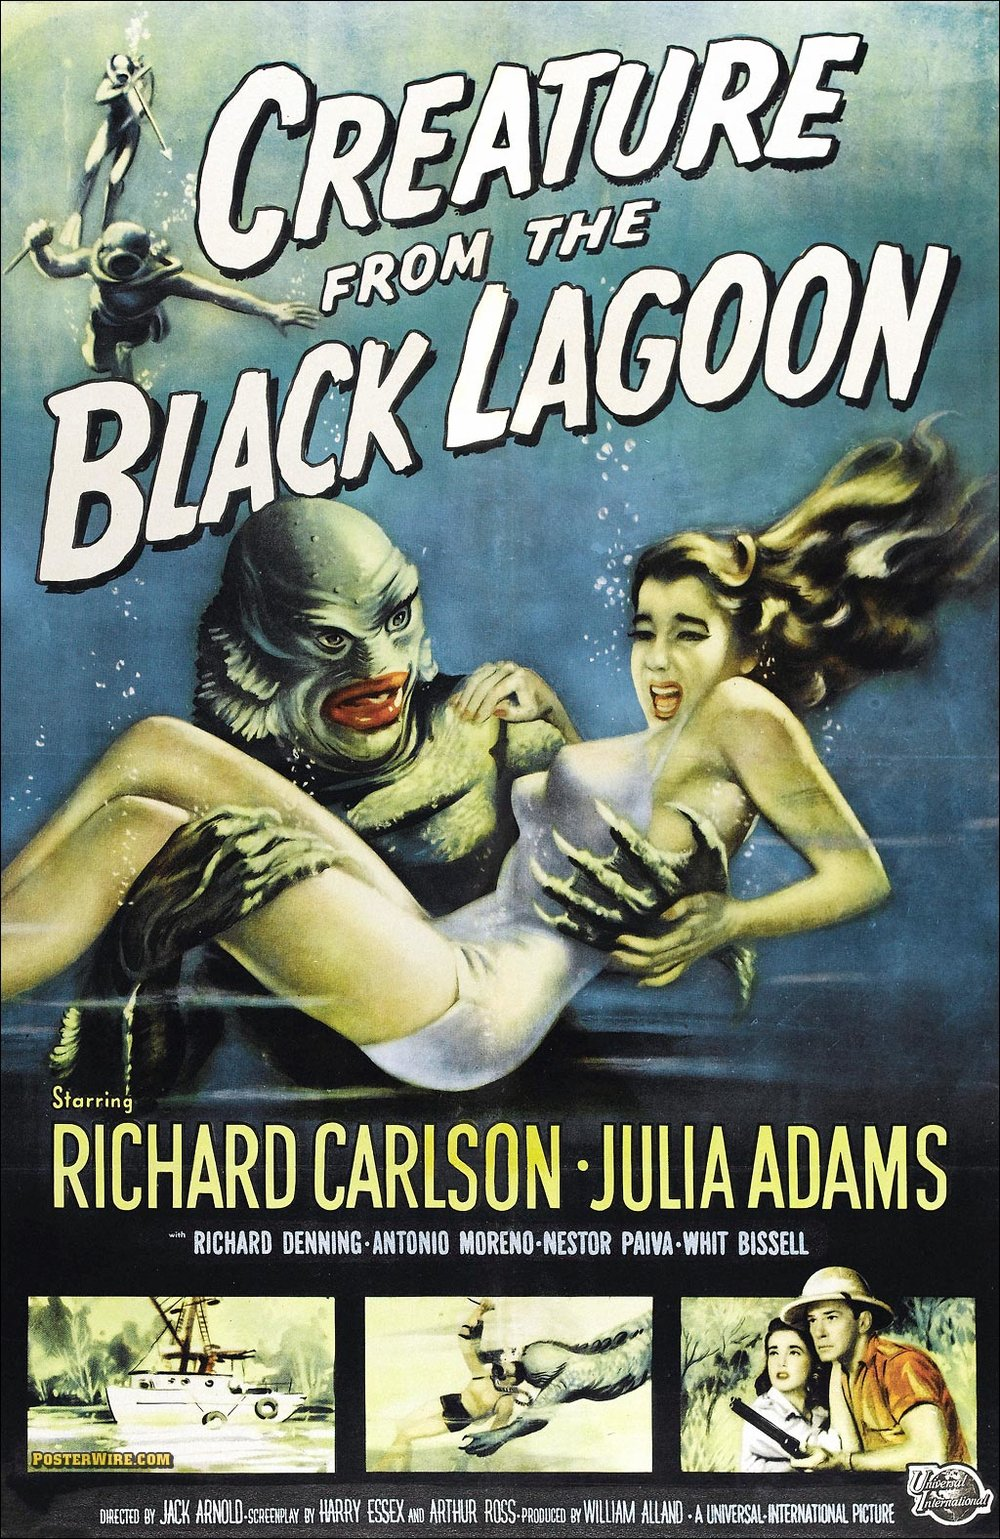 28 - Creature from the Black Lagoon